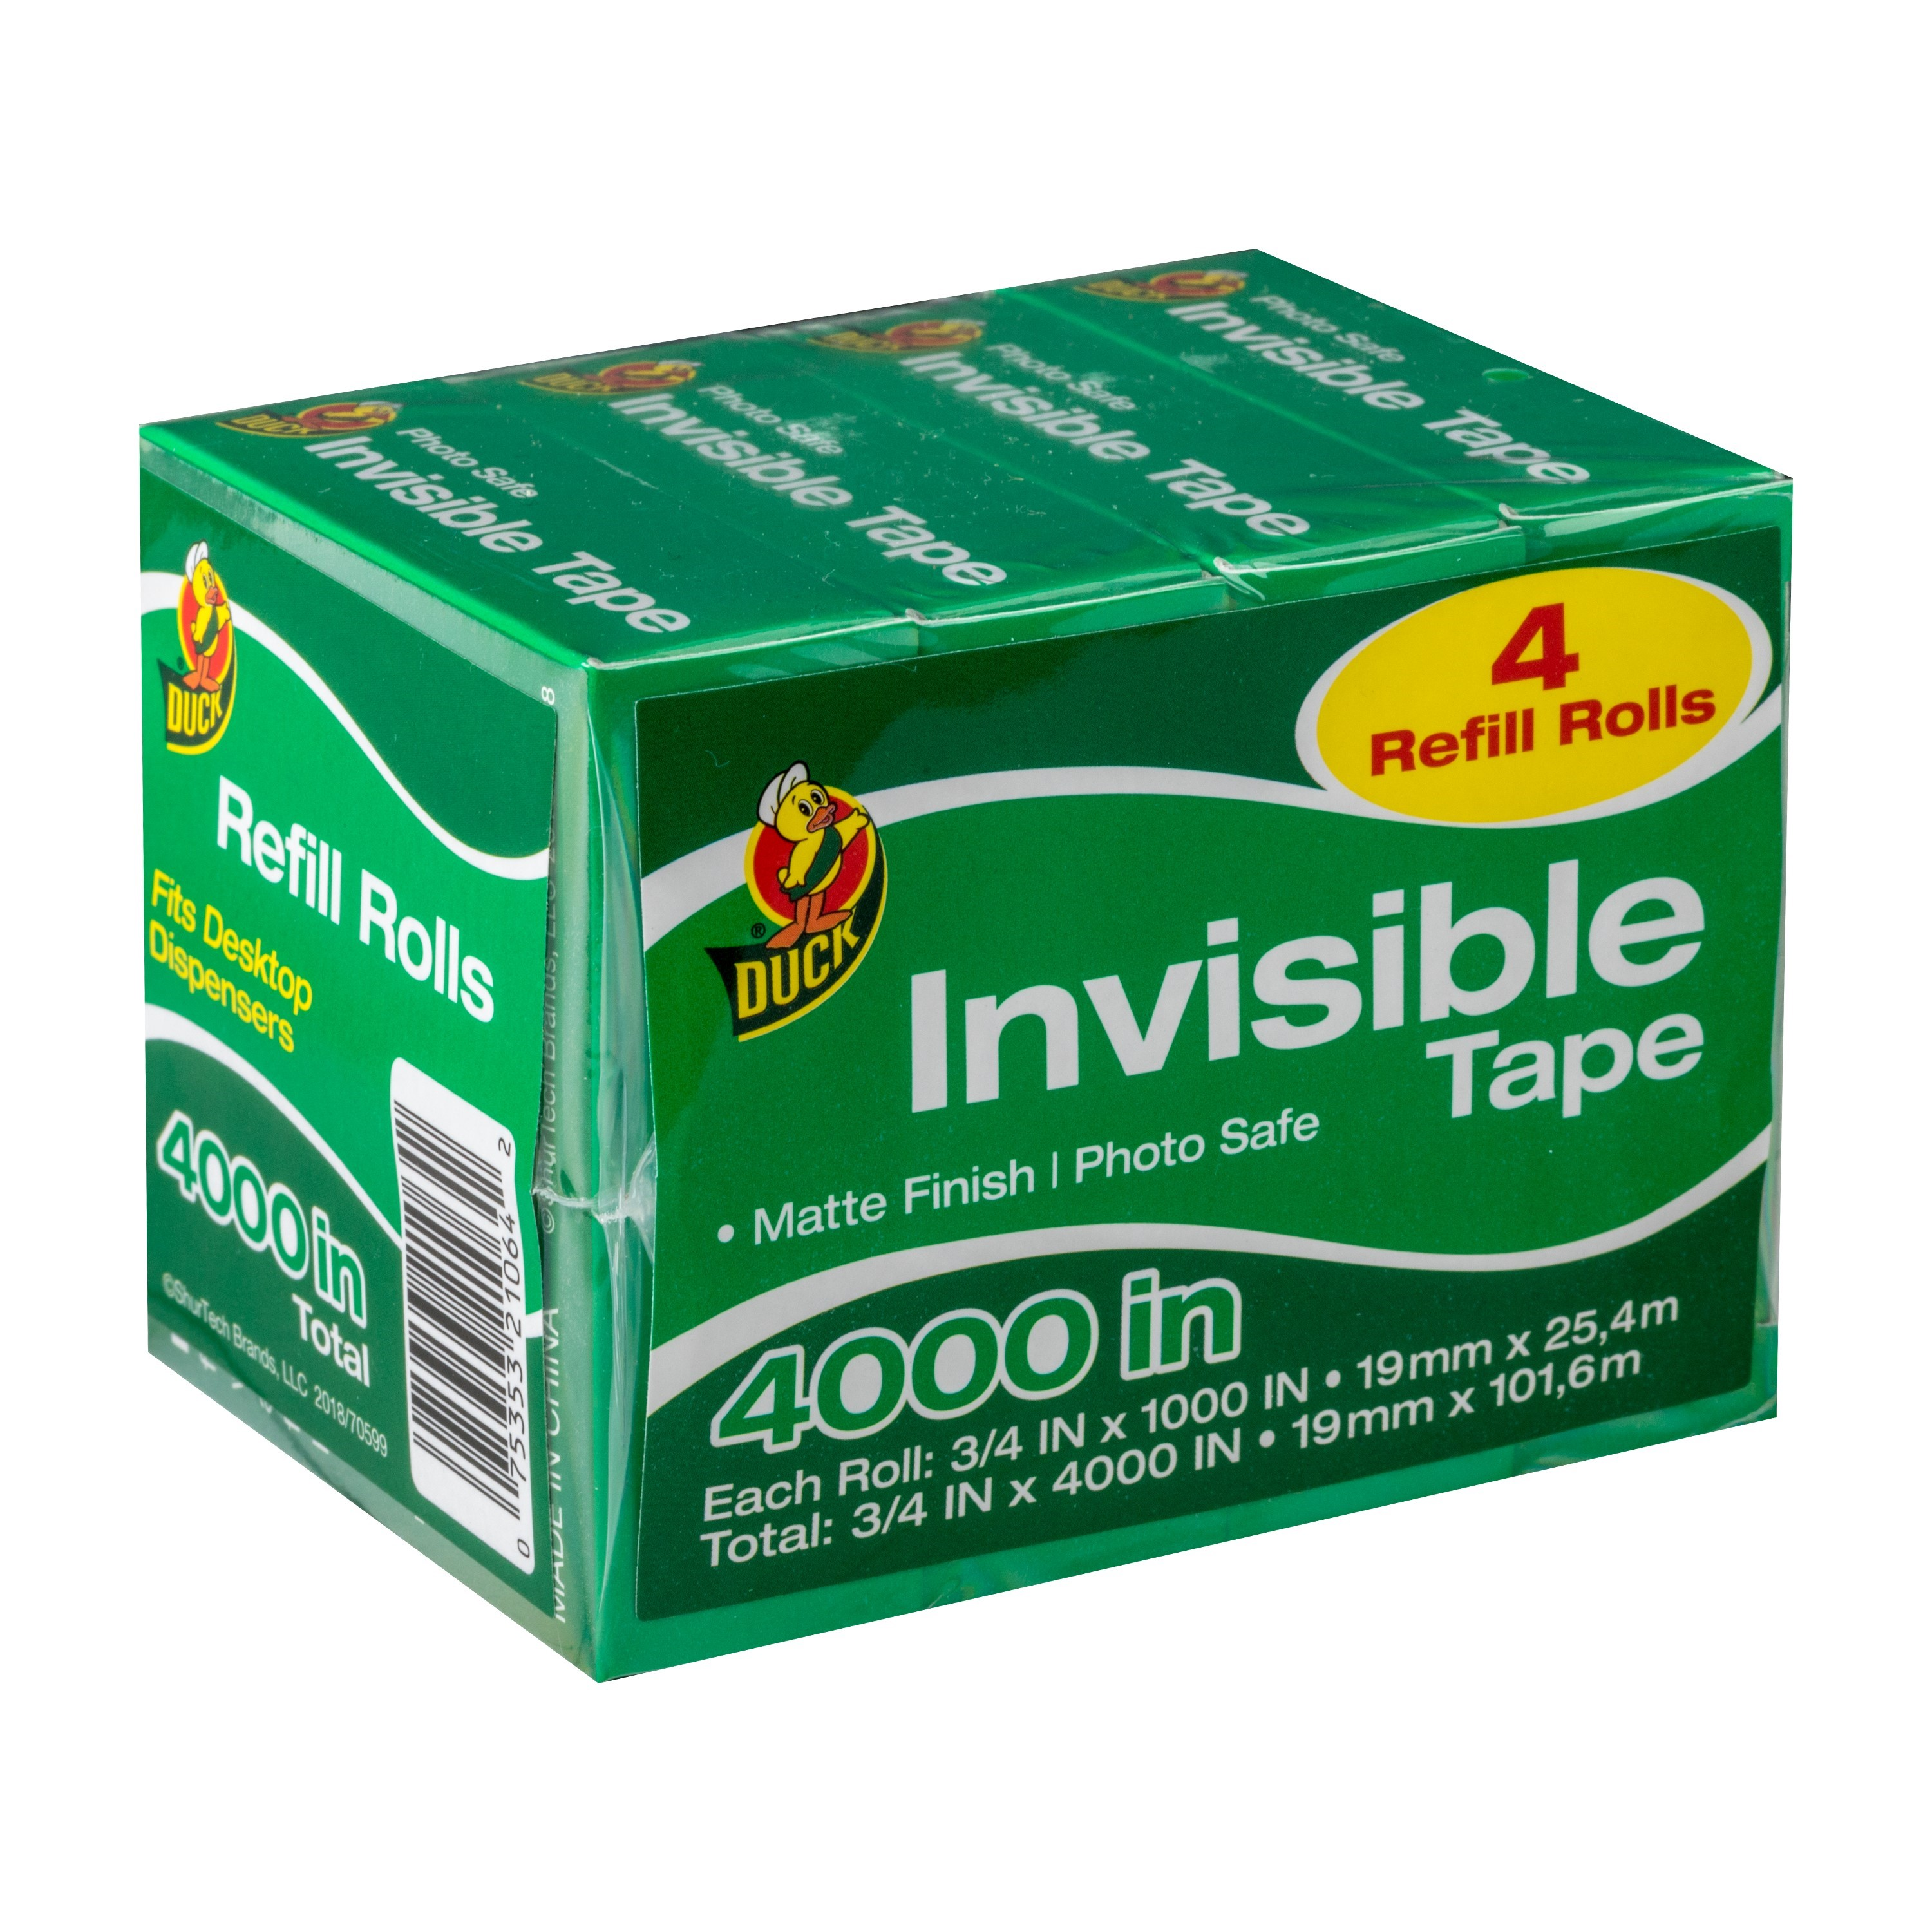 Duck Brand Matte Finish Invisible Tape .75 In. x 1,000 In. Refill Rolls, 4-pack